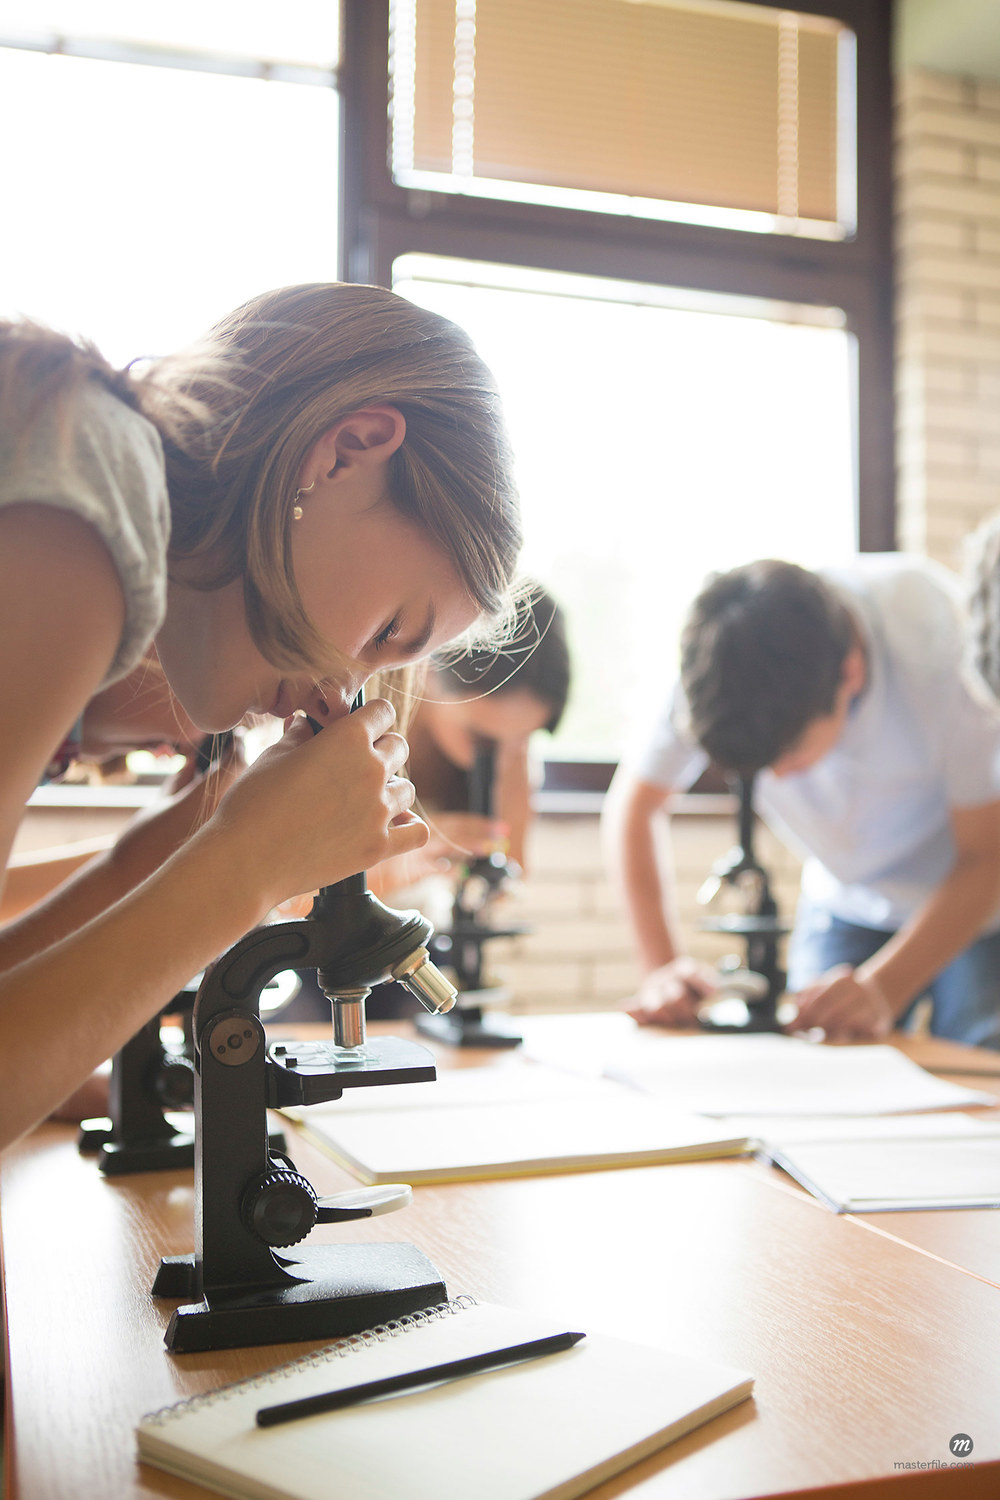 Students using microscopes in science class © Masterfile